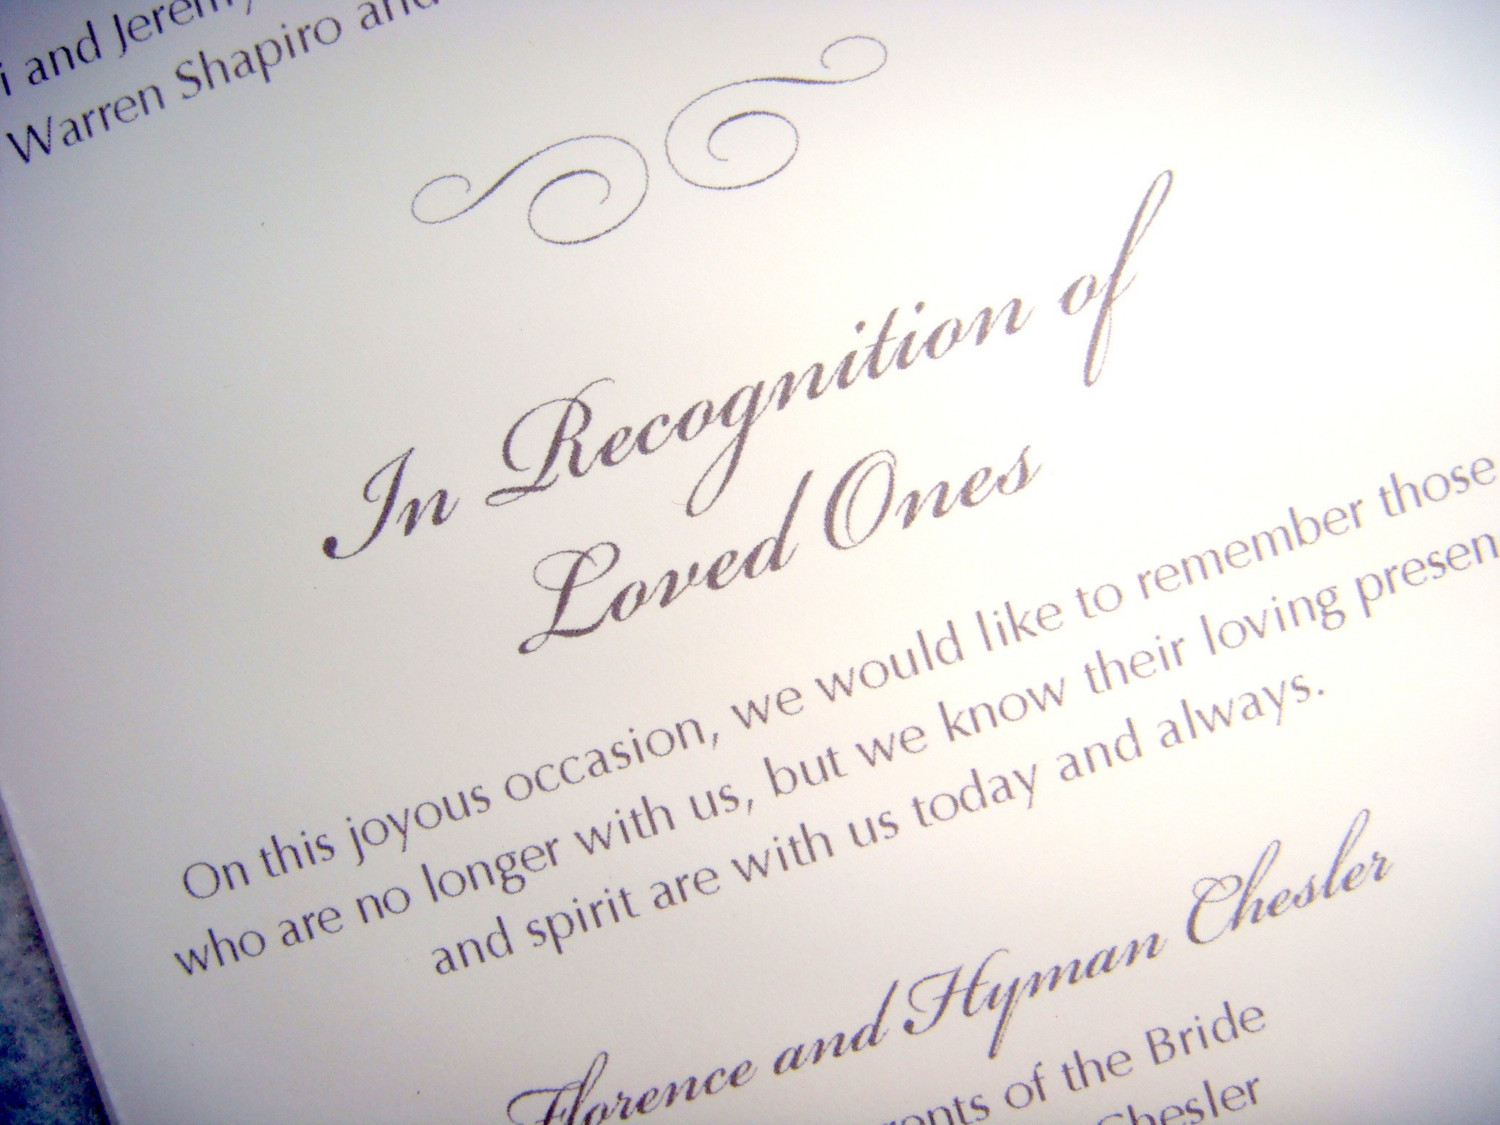 Honoring Lost Loved Ones Quotes : How to Honor Lost Loved Ones at Your Wedding